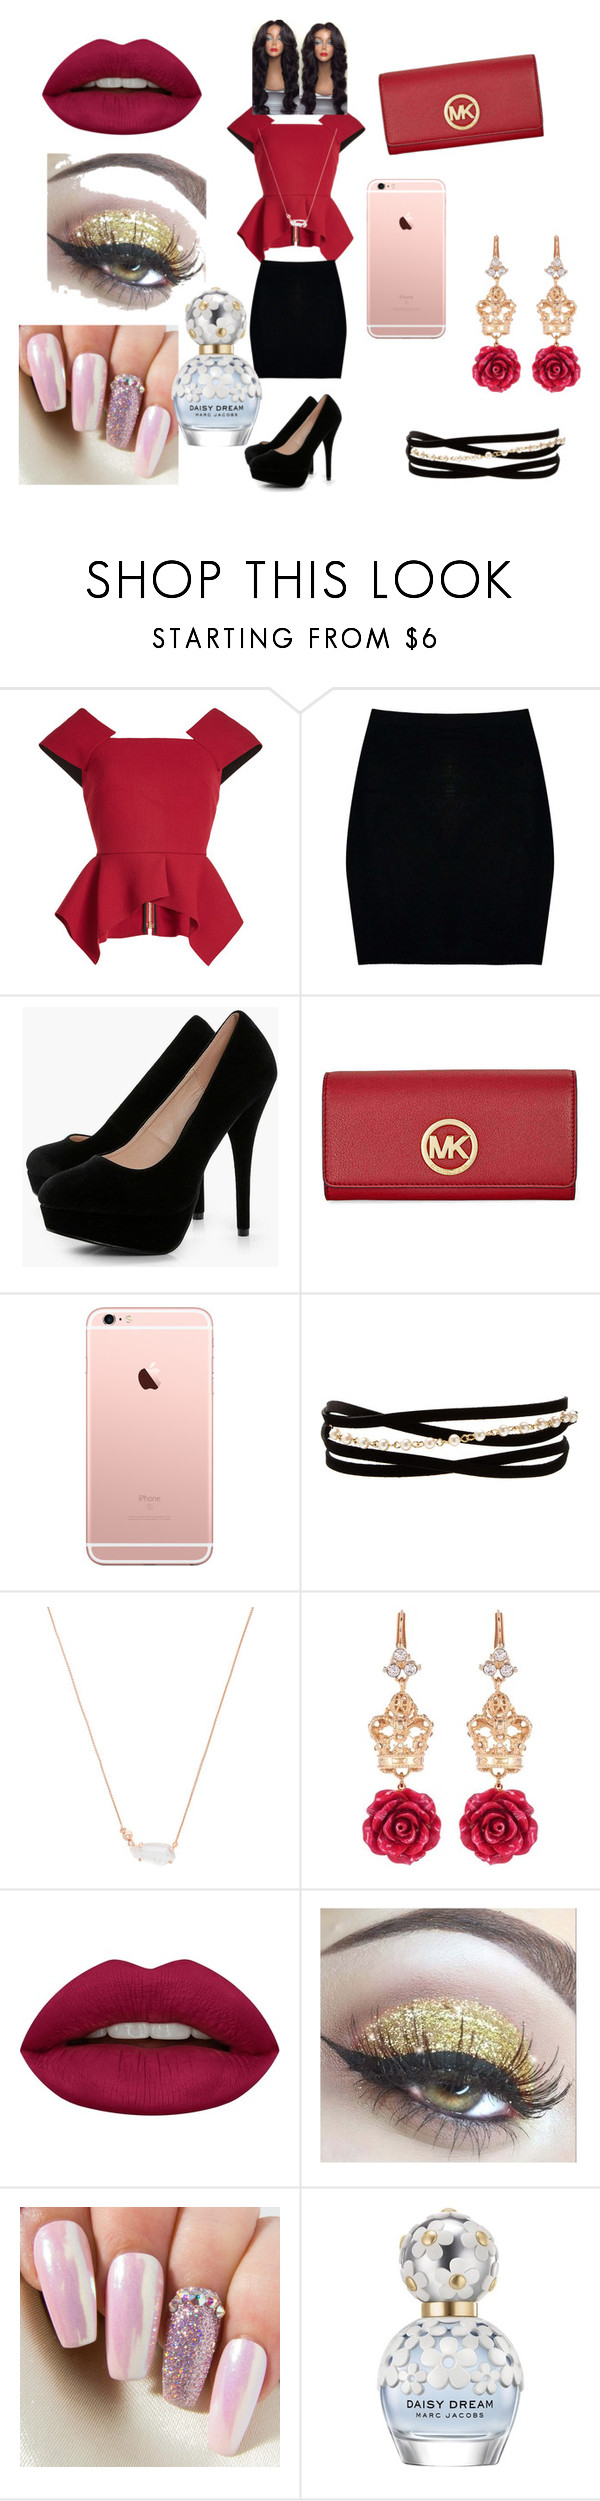 """""""Untitled #31"""" by kimorafrazier1234 on Polyvore featuring beauty, Roland Mouret, Boohoo, Michael Kors, Kenneth Jay Lane, Kendra Scott, Dolce&Gabbana, Huda Beauty and Marc Jacobs"""